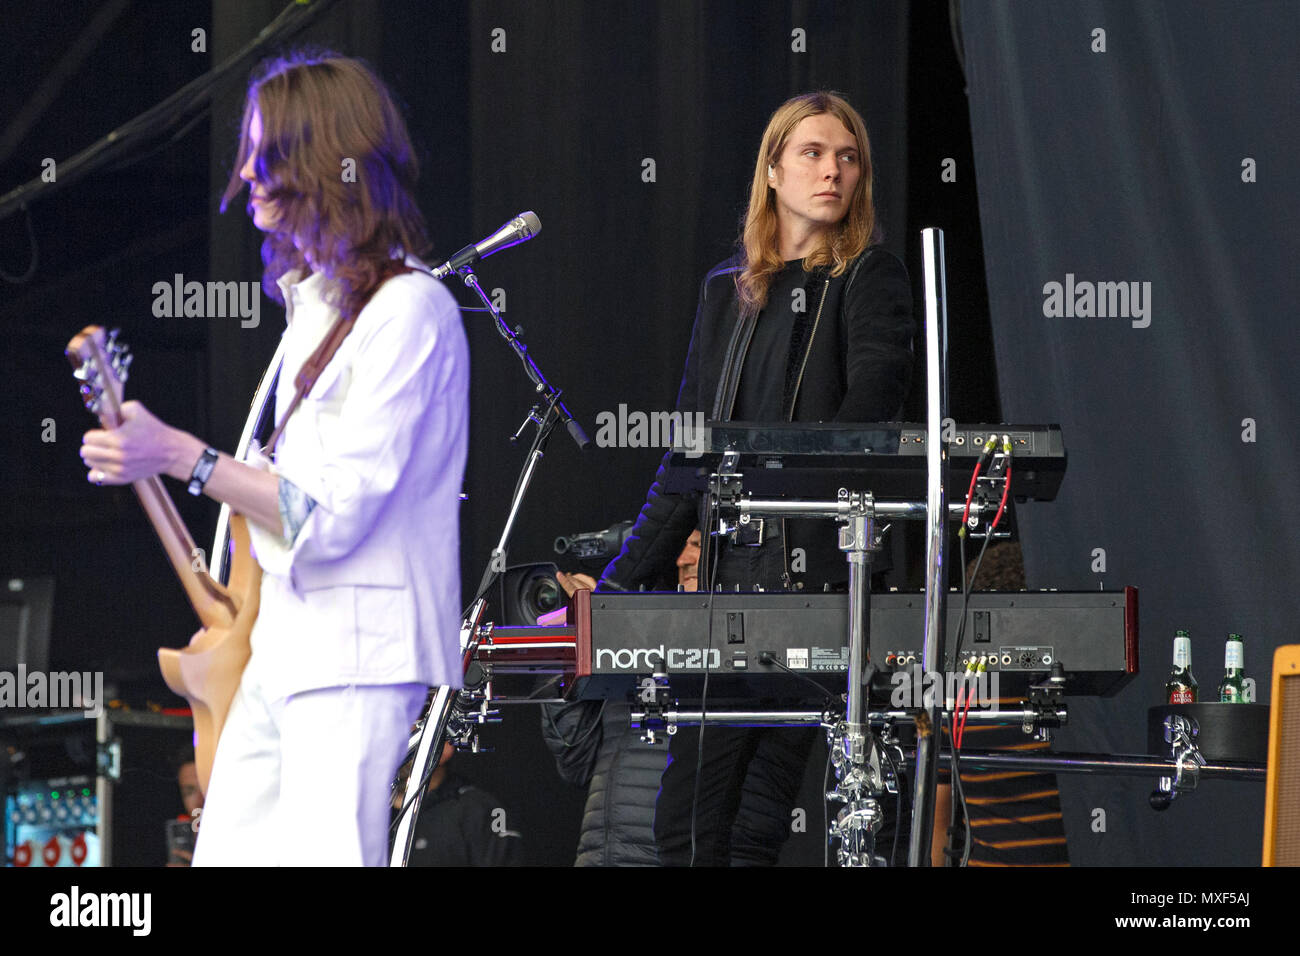 Myles Kellock, keyboards and synthesizers player for indie pop band Blossoms, live onstage. The other band member pictured (on the left) is vocalist Tom Ogden. Blossoms live, Blossoms in concert. - Stock Image